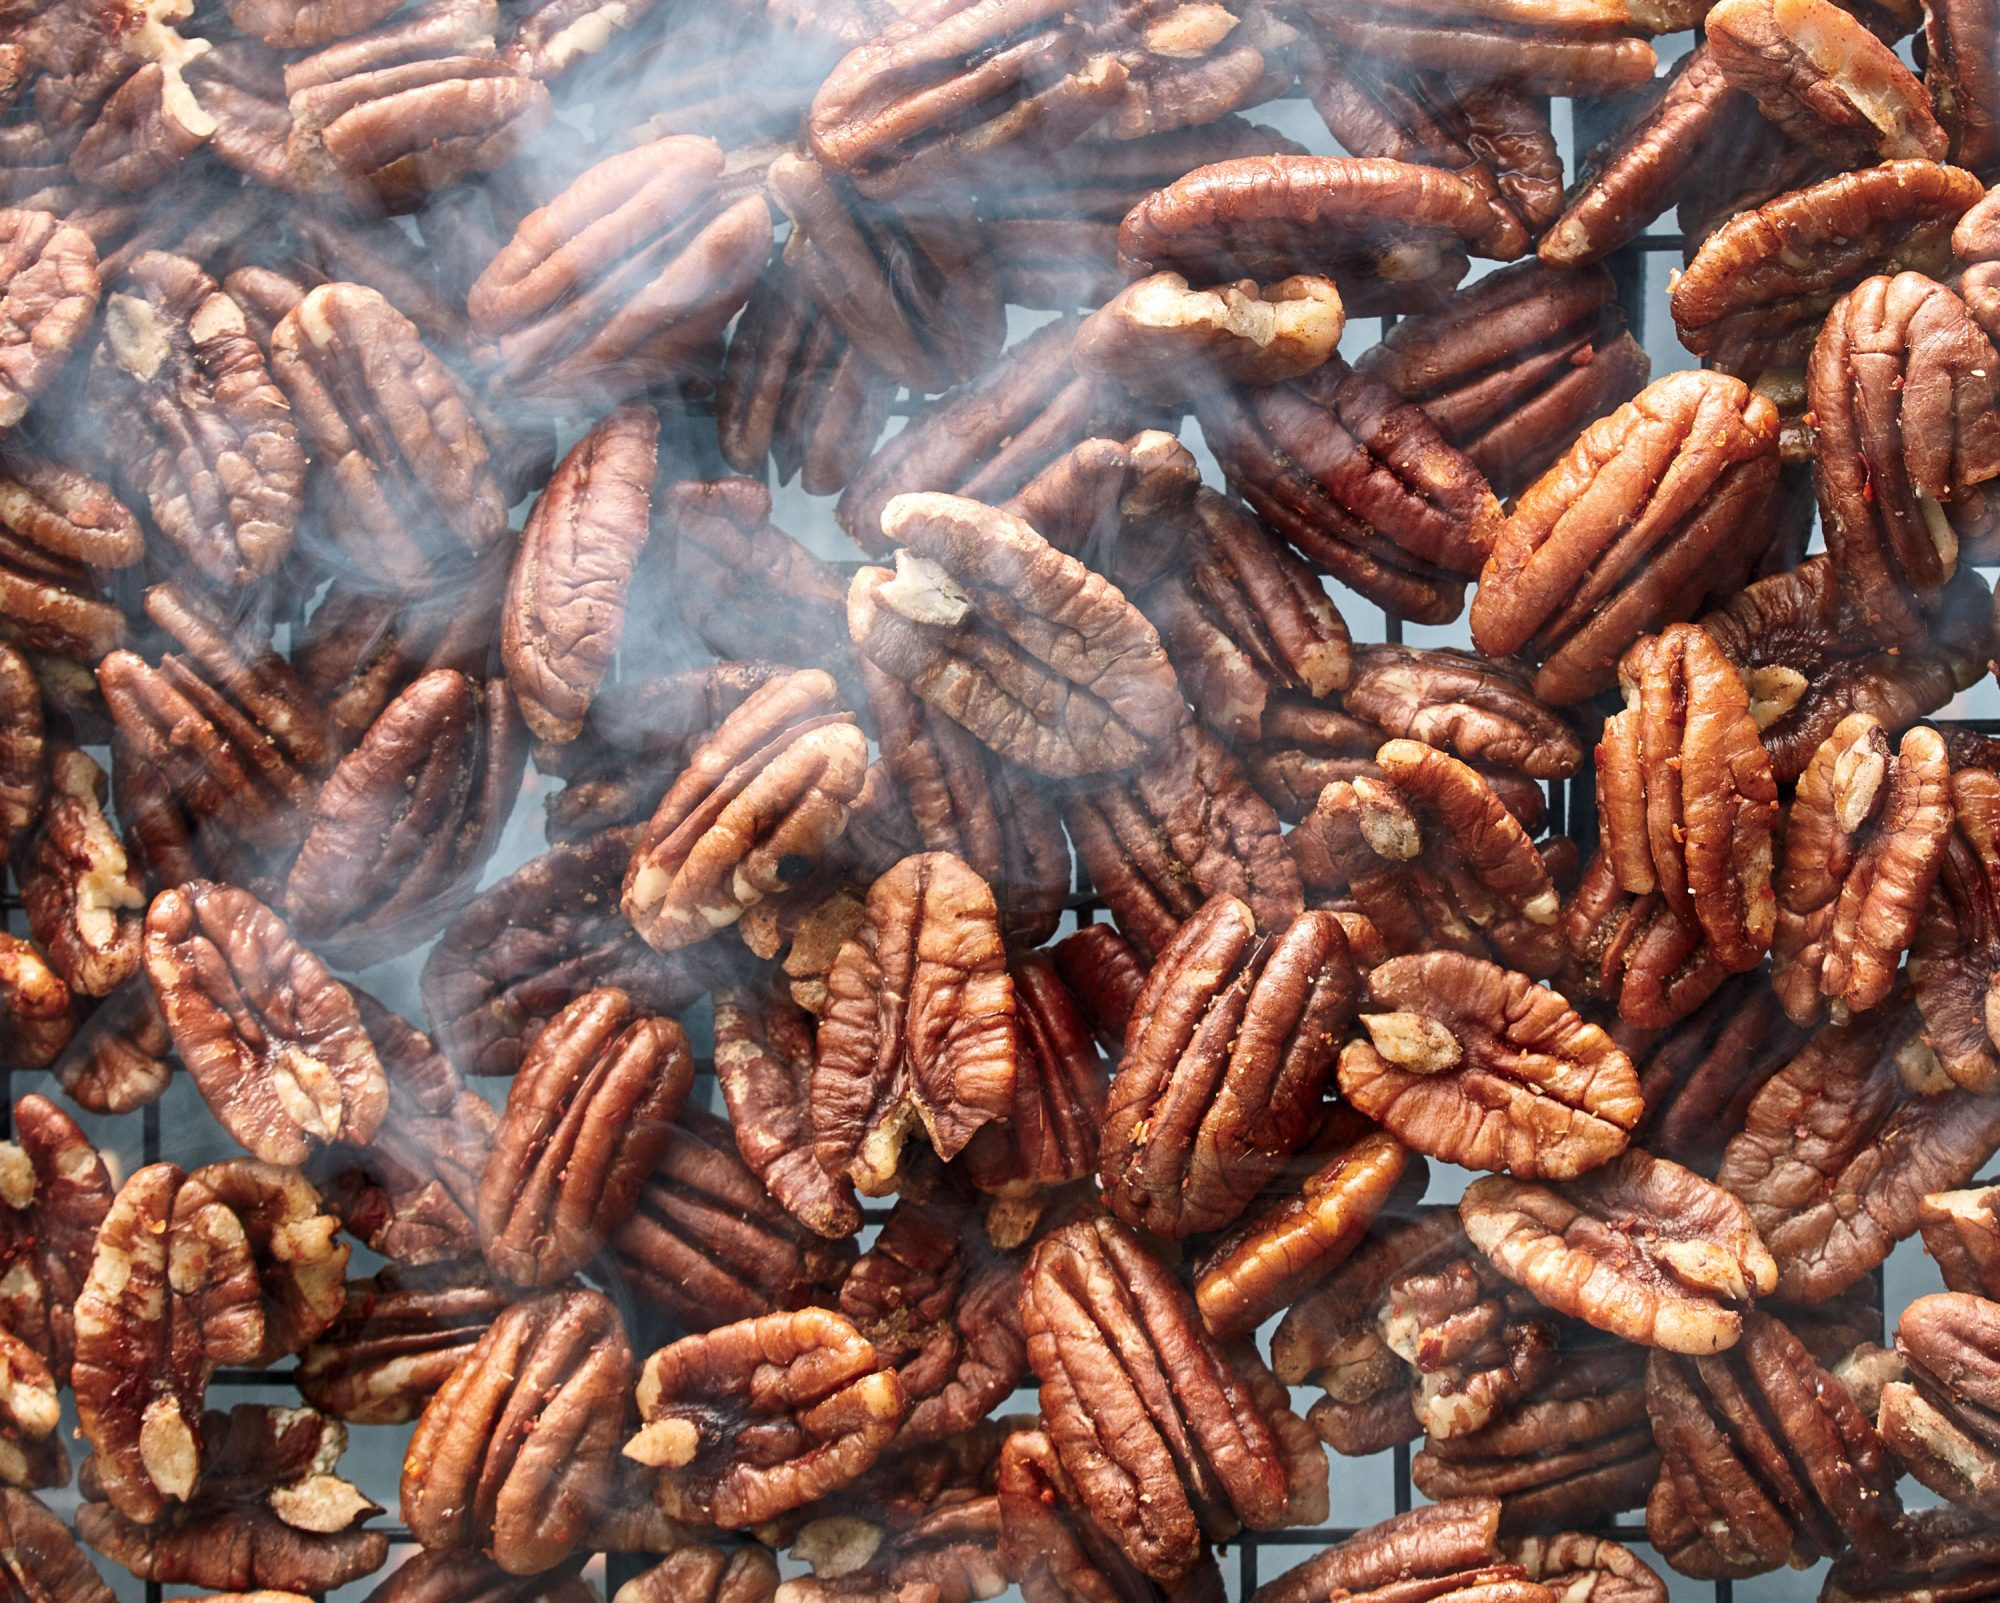 ck-Smoked and Spiced Pecans Image